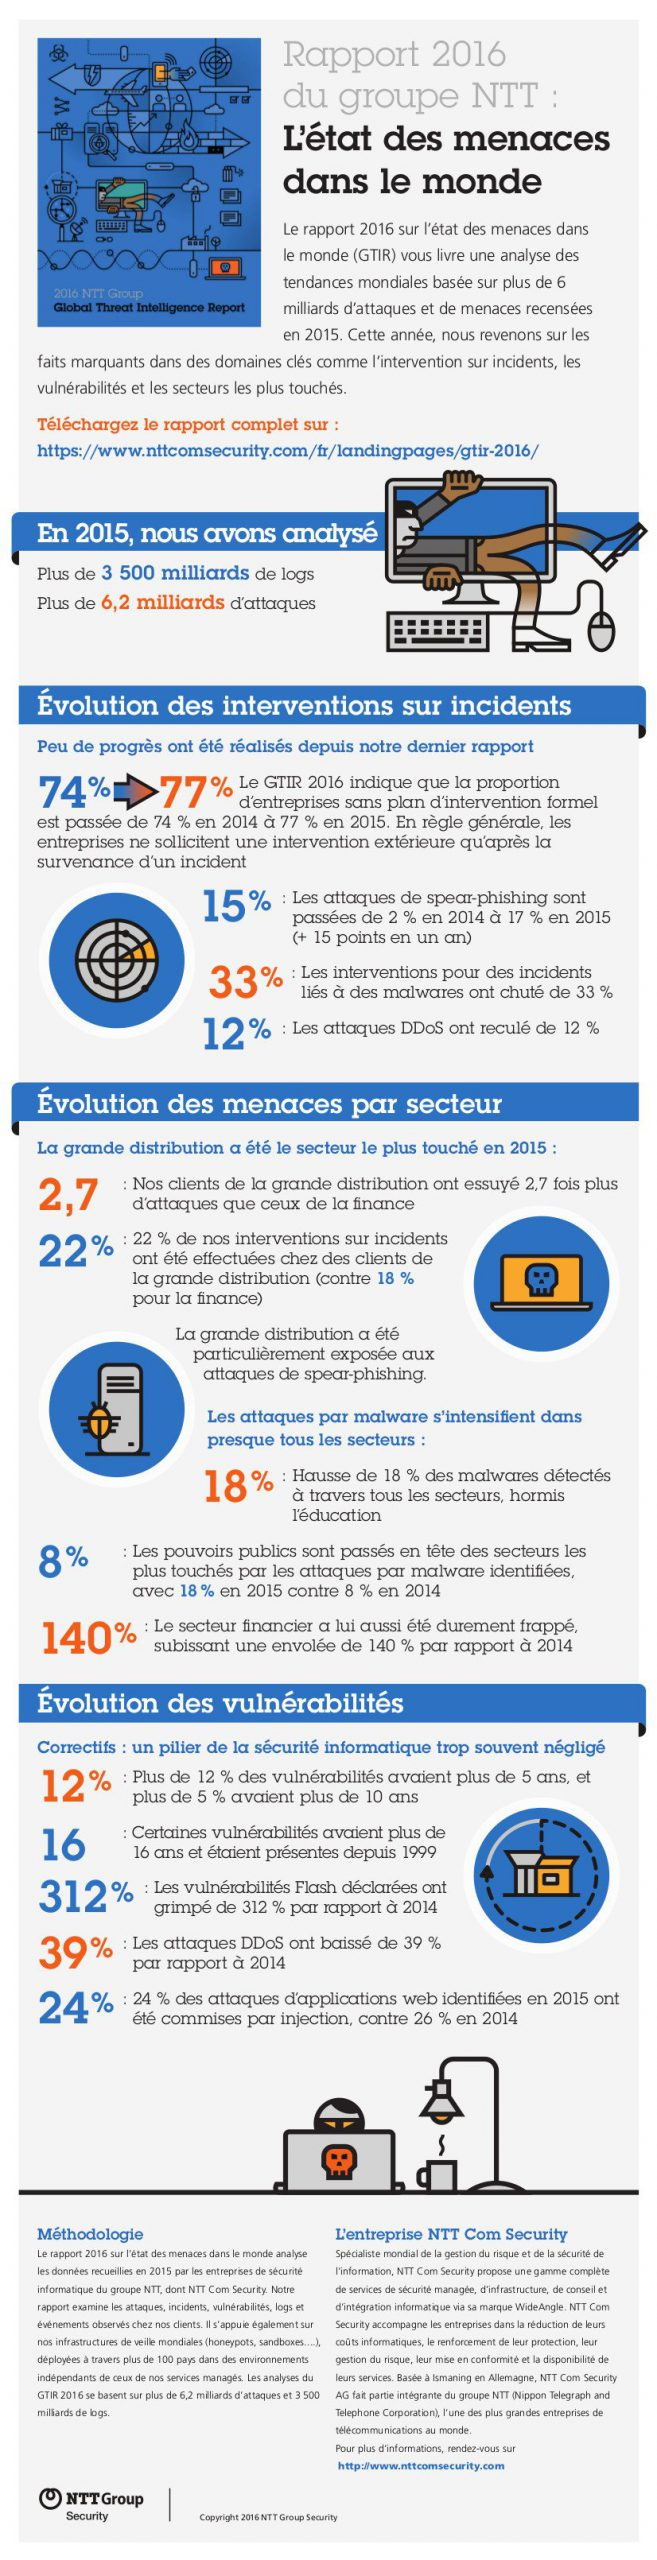 Infographie - Global Threat Intelligence Report NTT COM SECURITY